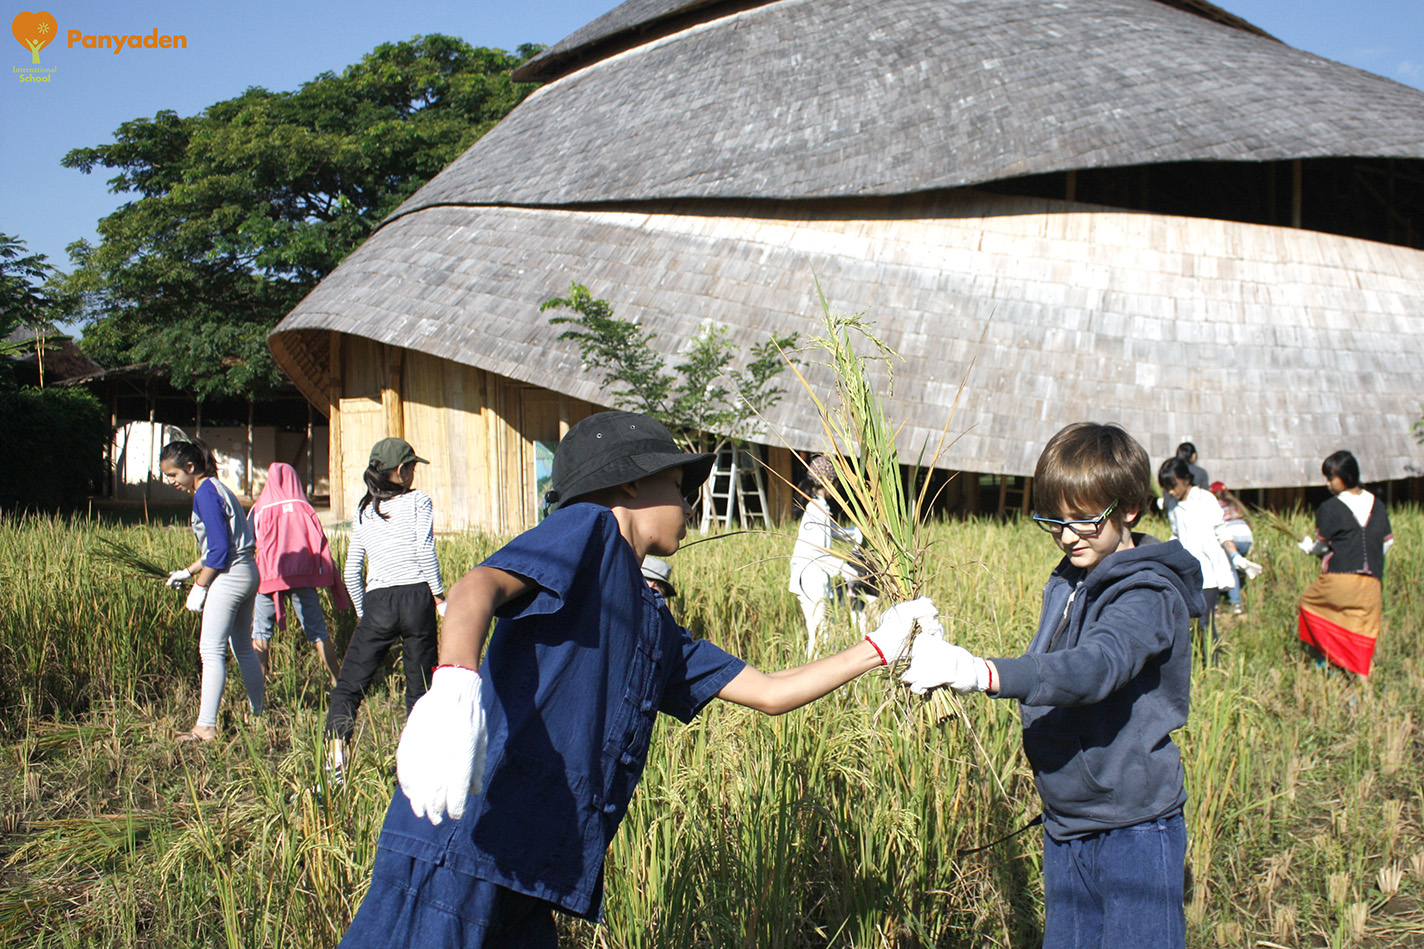 Teamwork. Panyaden Life Skills class - Y6/7 students harvest rice together